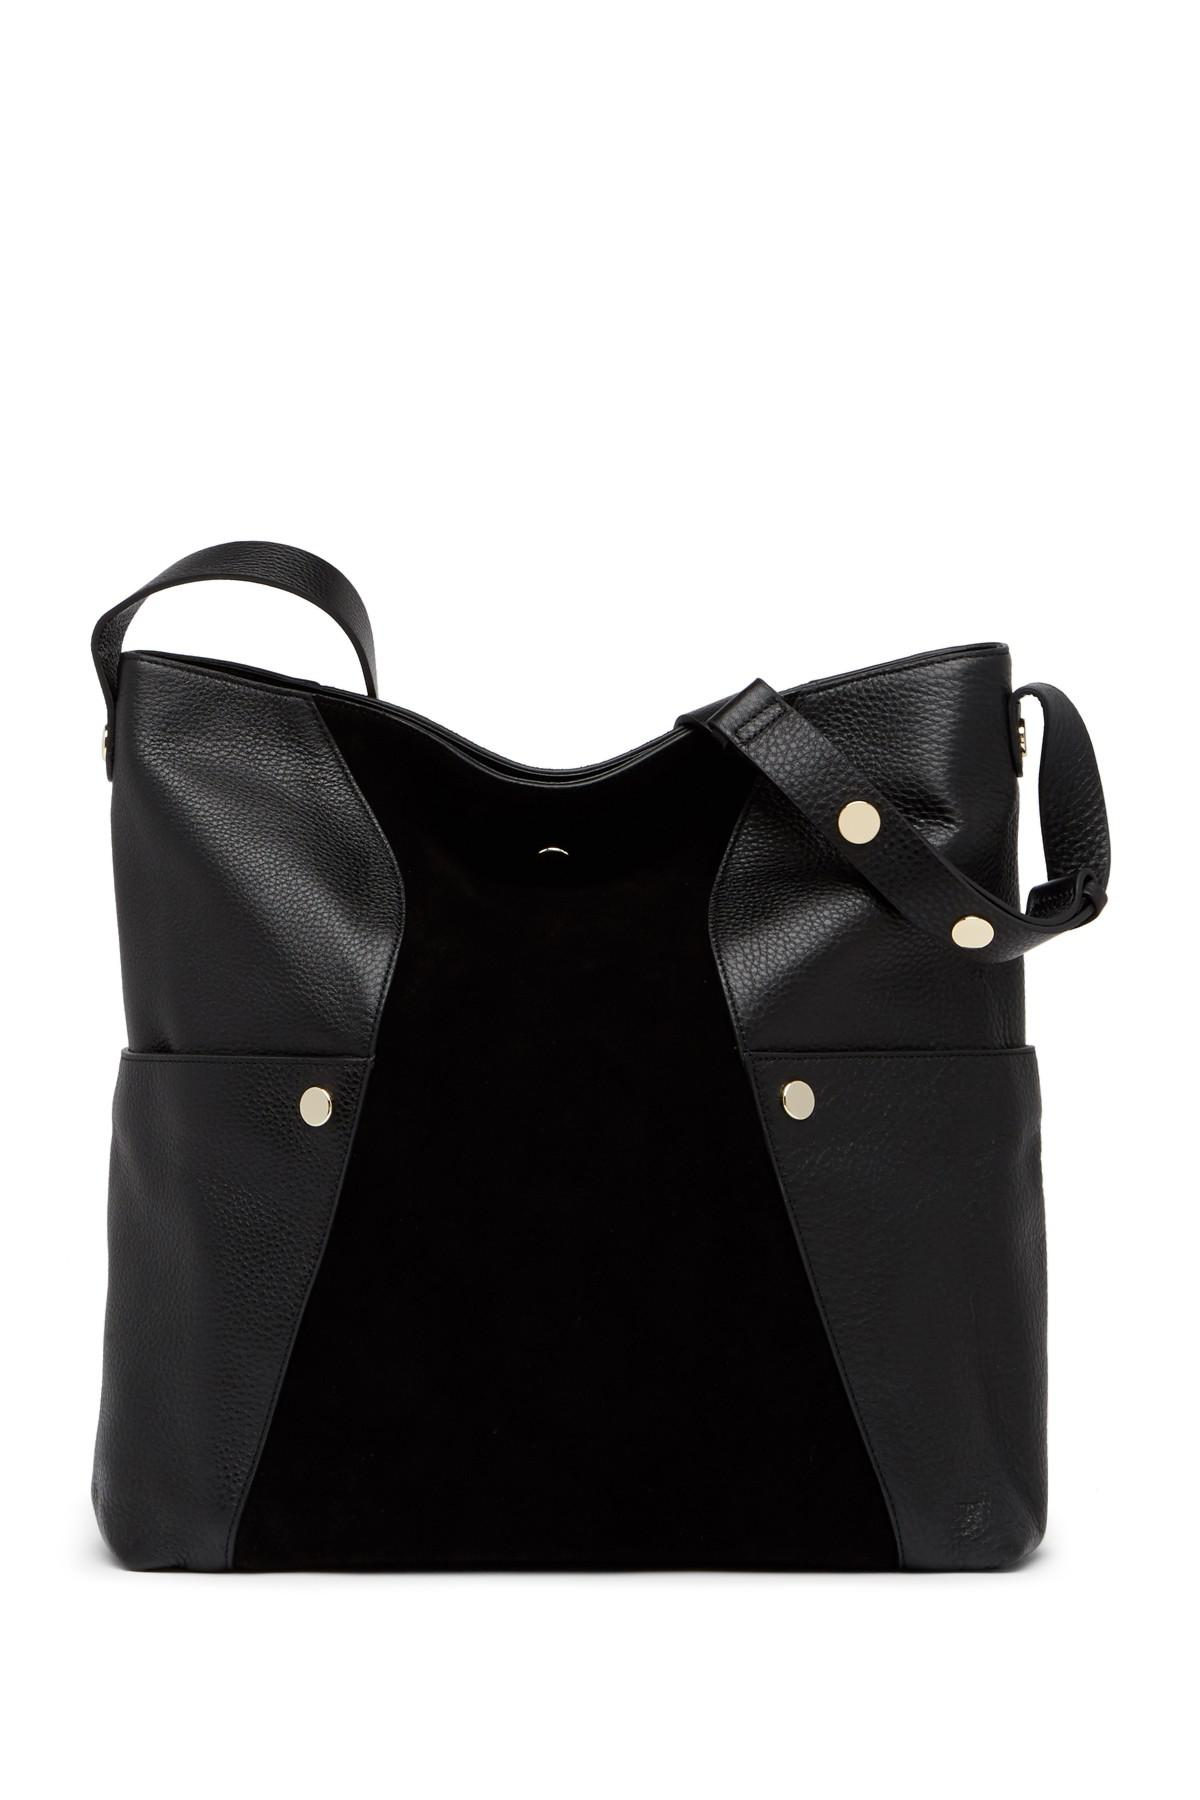 Lyst - Halston Large Suede   Pebbled Leather Hobo Bag in Black 6b93fe7d8ae6d